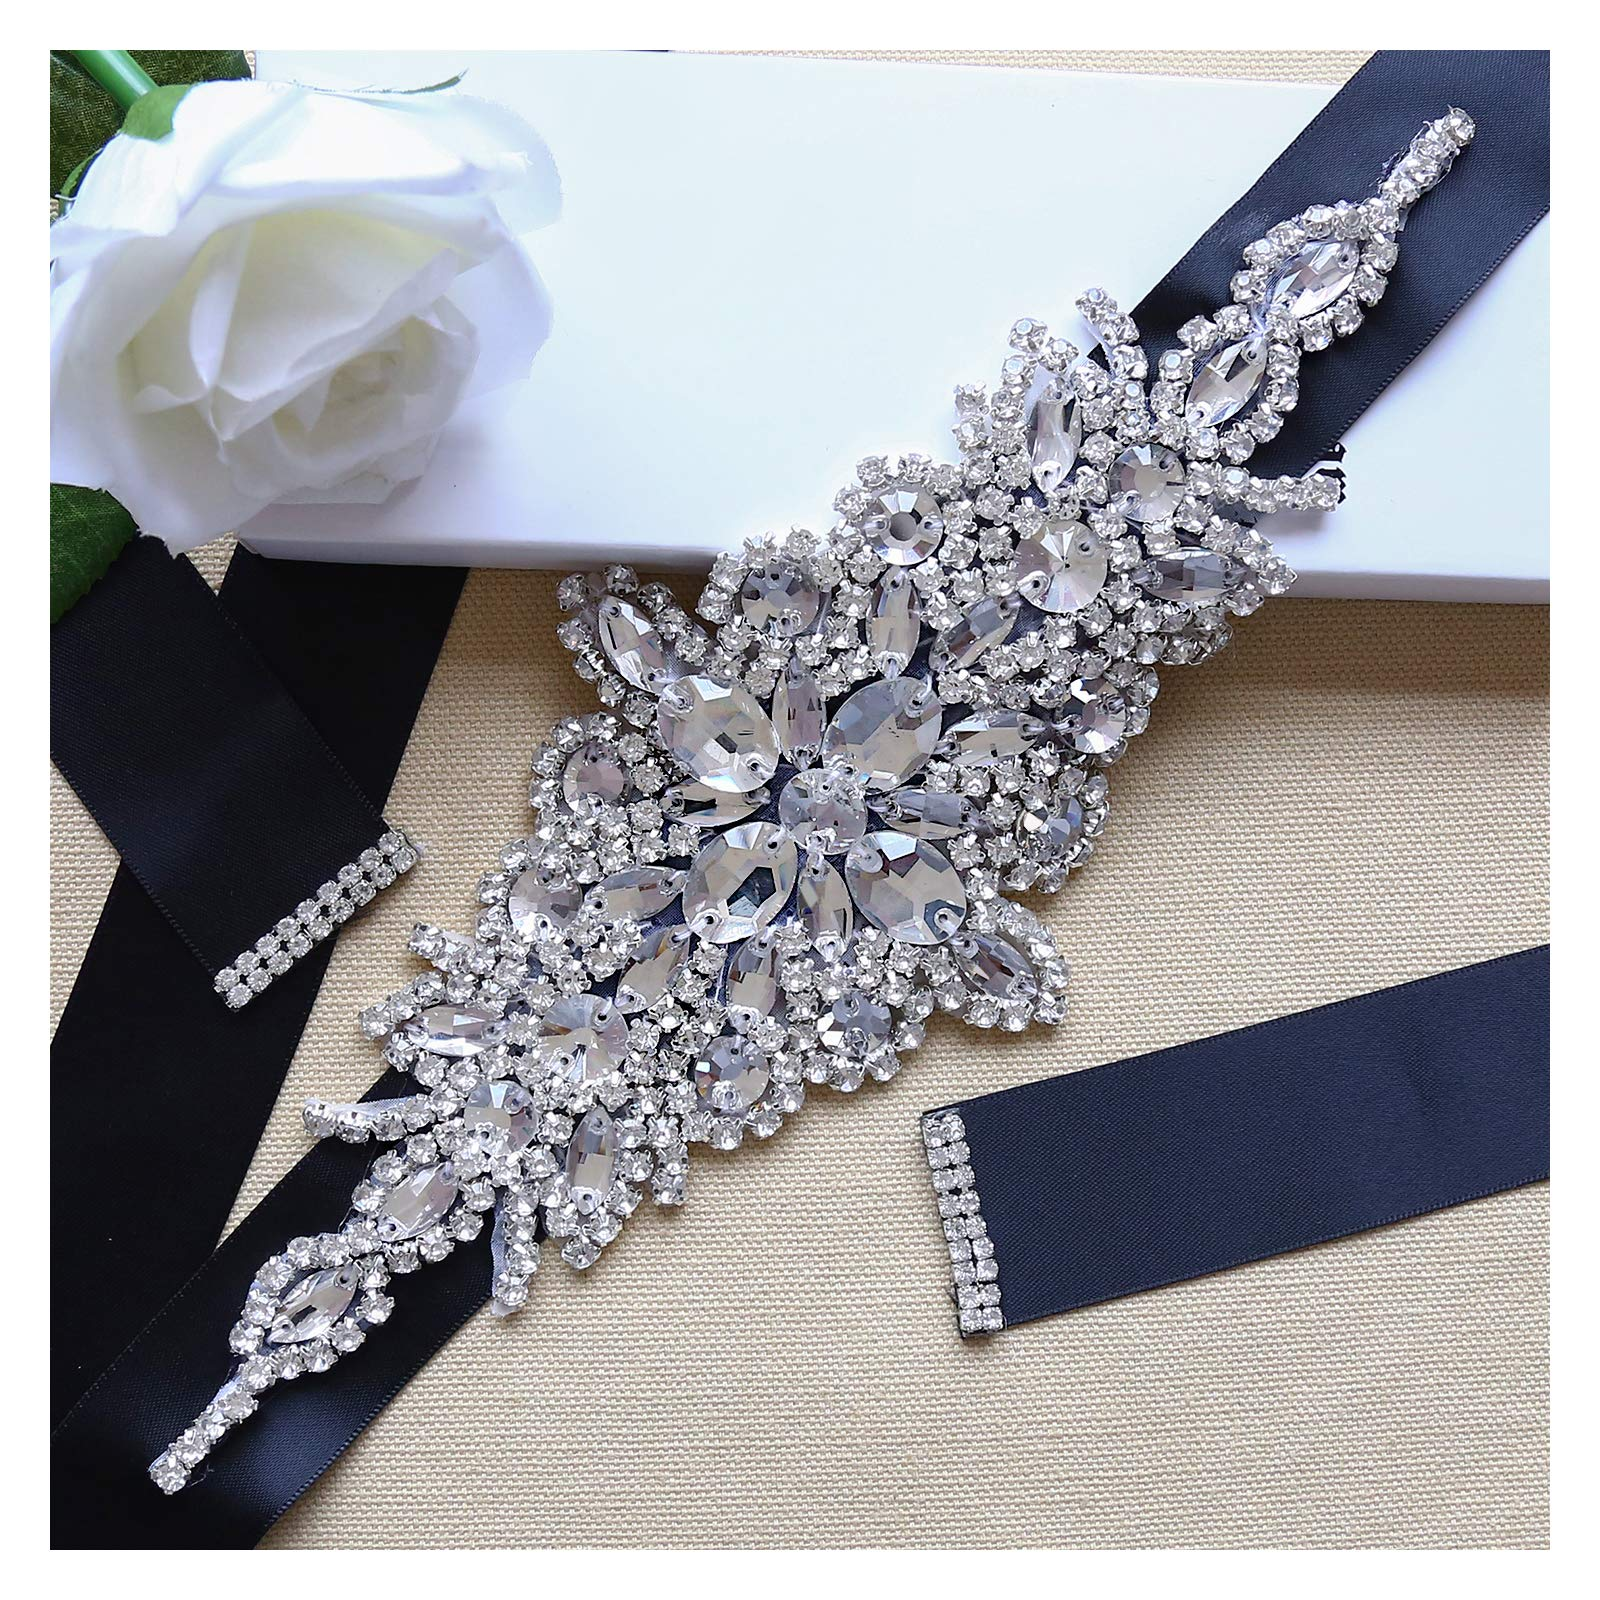 Crystal Applique with Black Ribbon Wedding Dress Belt Clear Rhinestone for Bridal Evening Dress Accessories by QueenDream